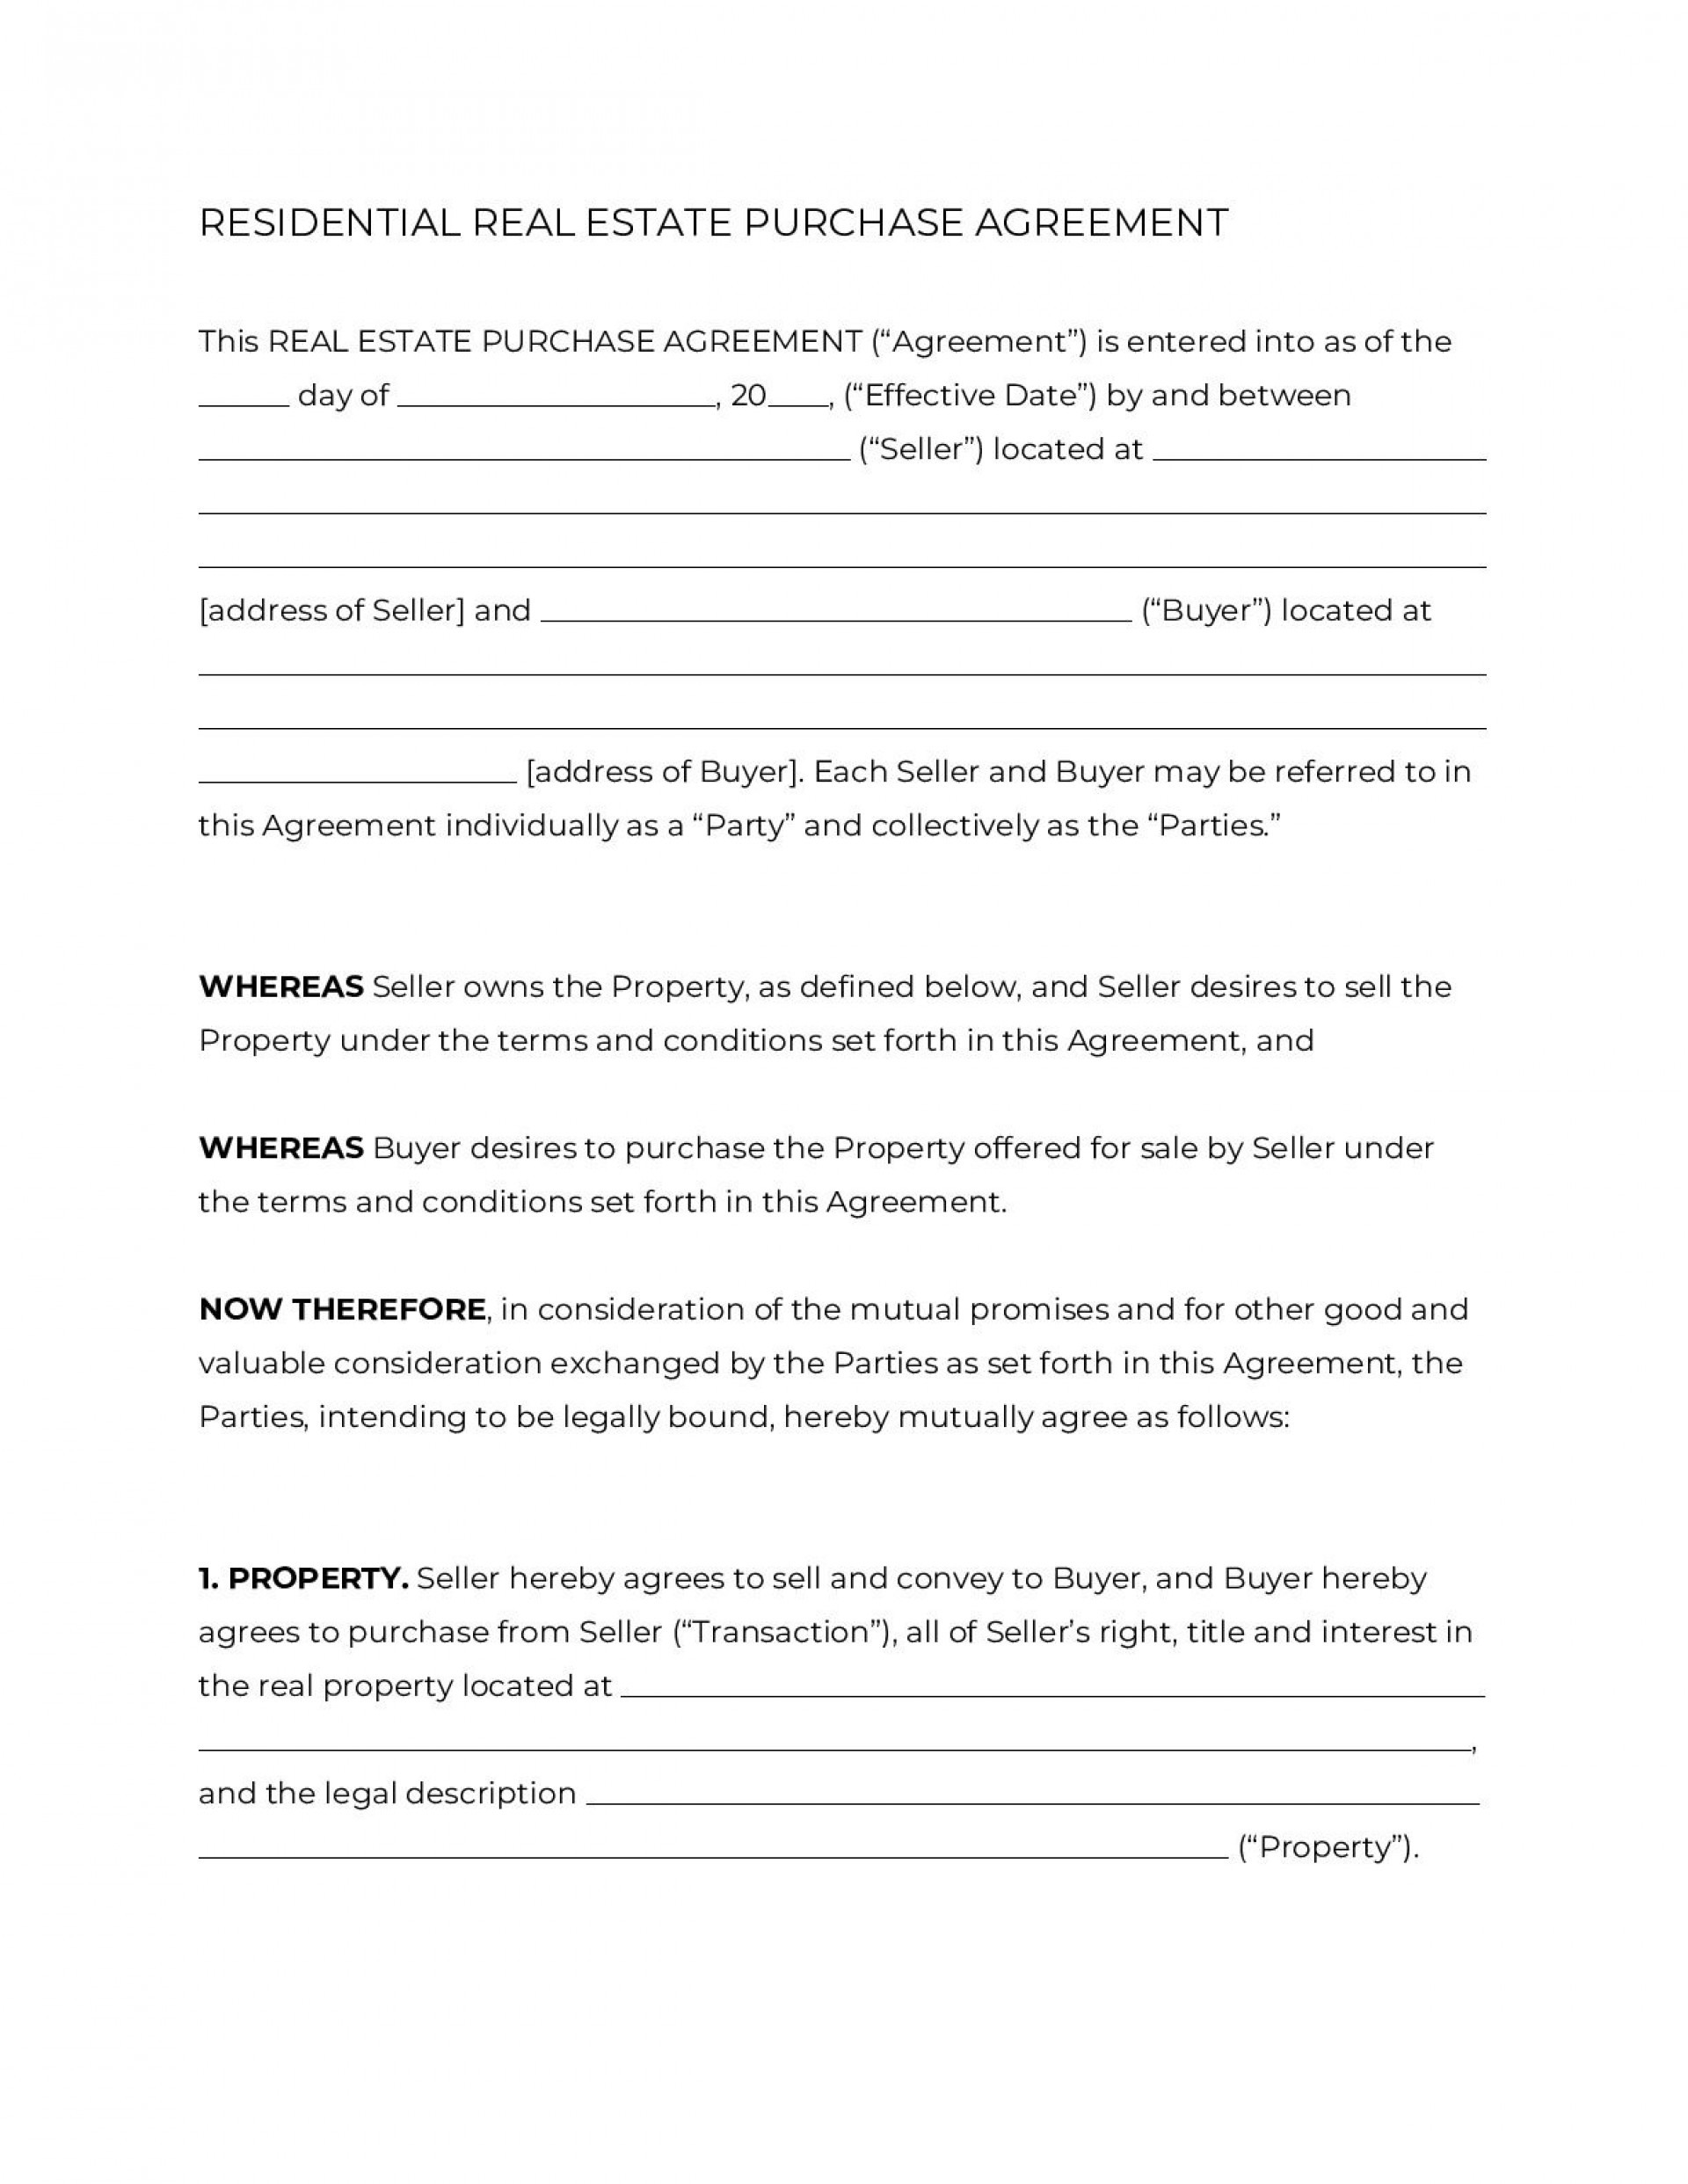 009 Awesome Real Estate Purchase Contract California Free Highest Quality 1920